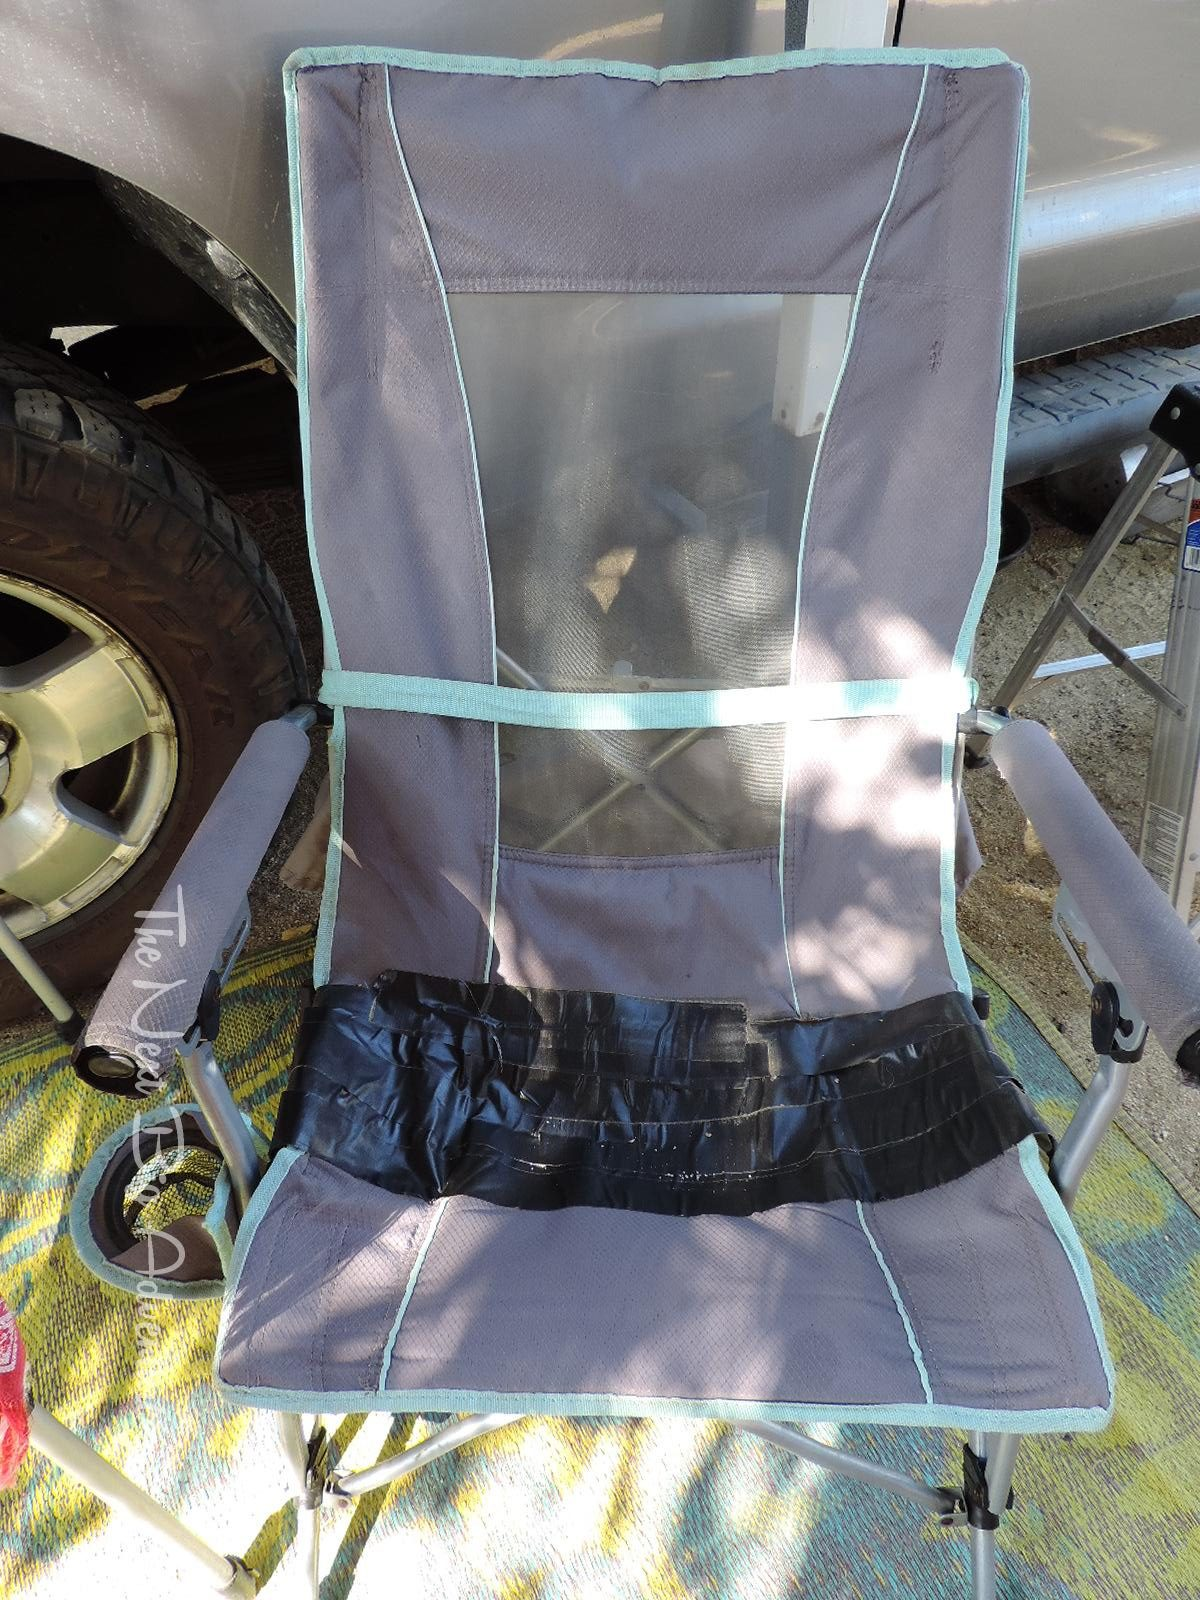 rei camp x chair heavy duty lift a tale of two chairs gear review the next